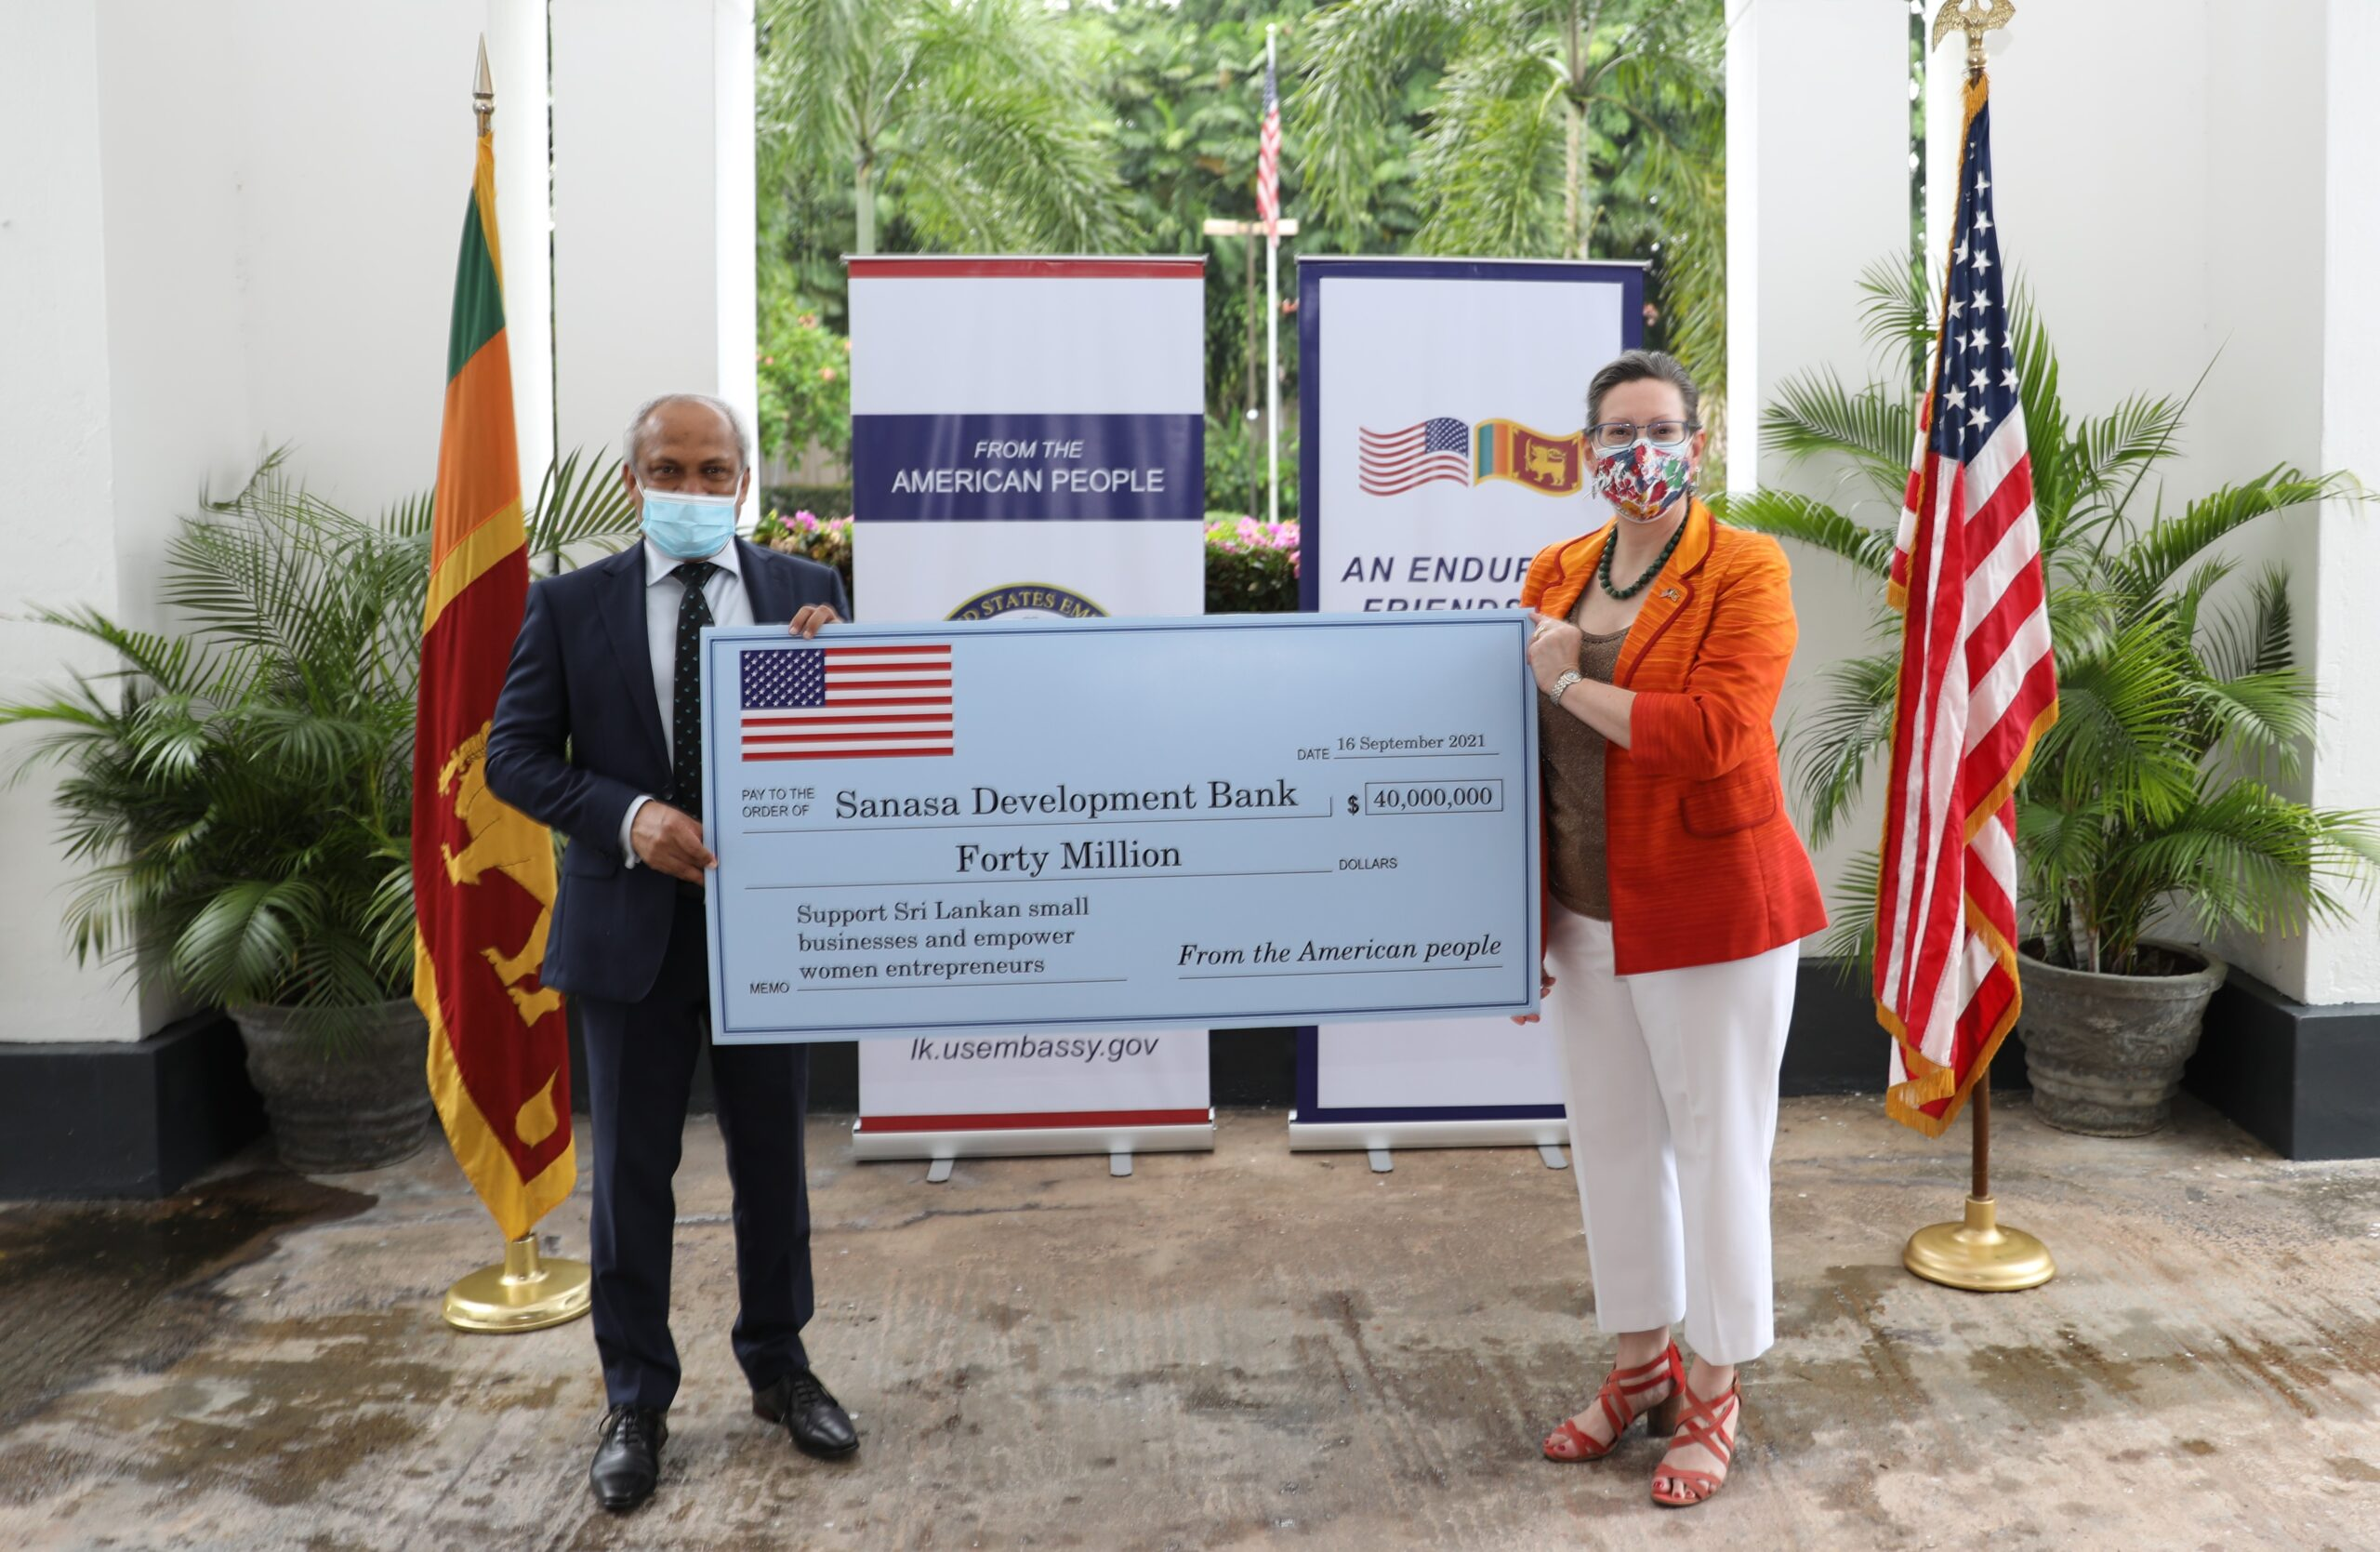 United States Delivers $40 Million in Financing to Support Small Businesses and Empower Sri Lankan Women